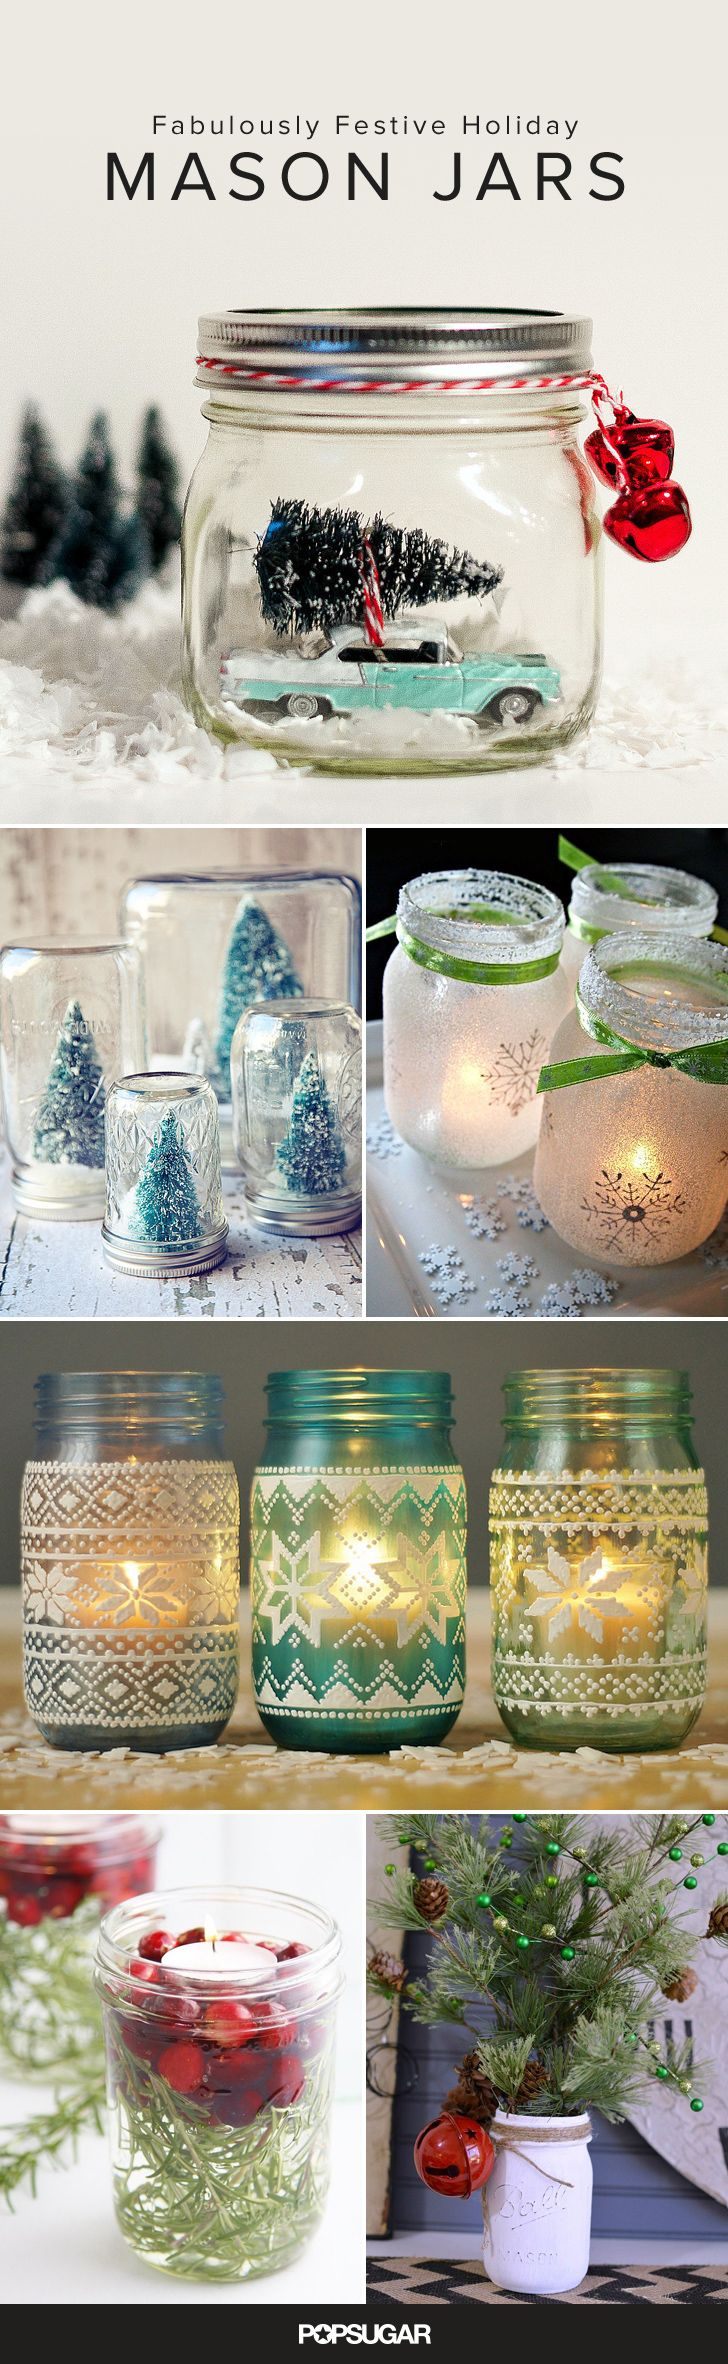 We've rounded up some of our favorite mason jar ideas for the holiday season that will inspire you to start decorating!